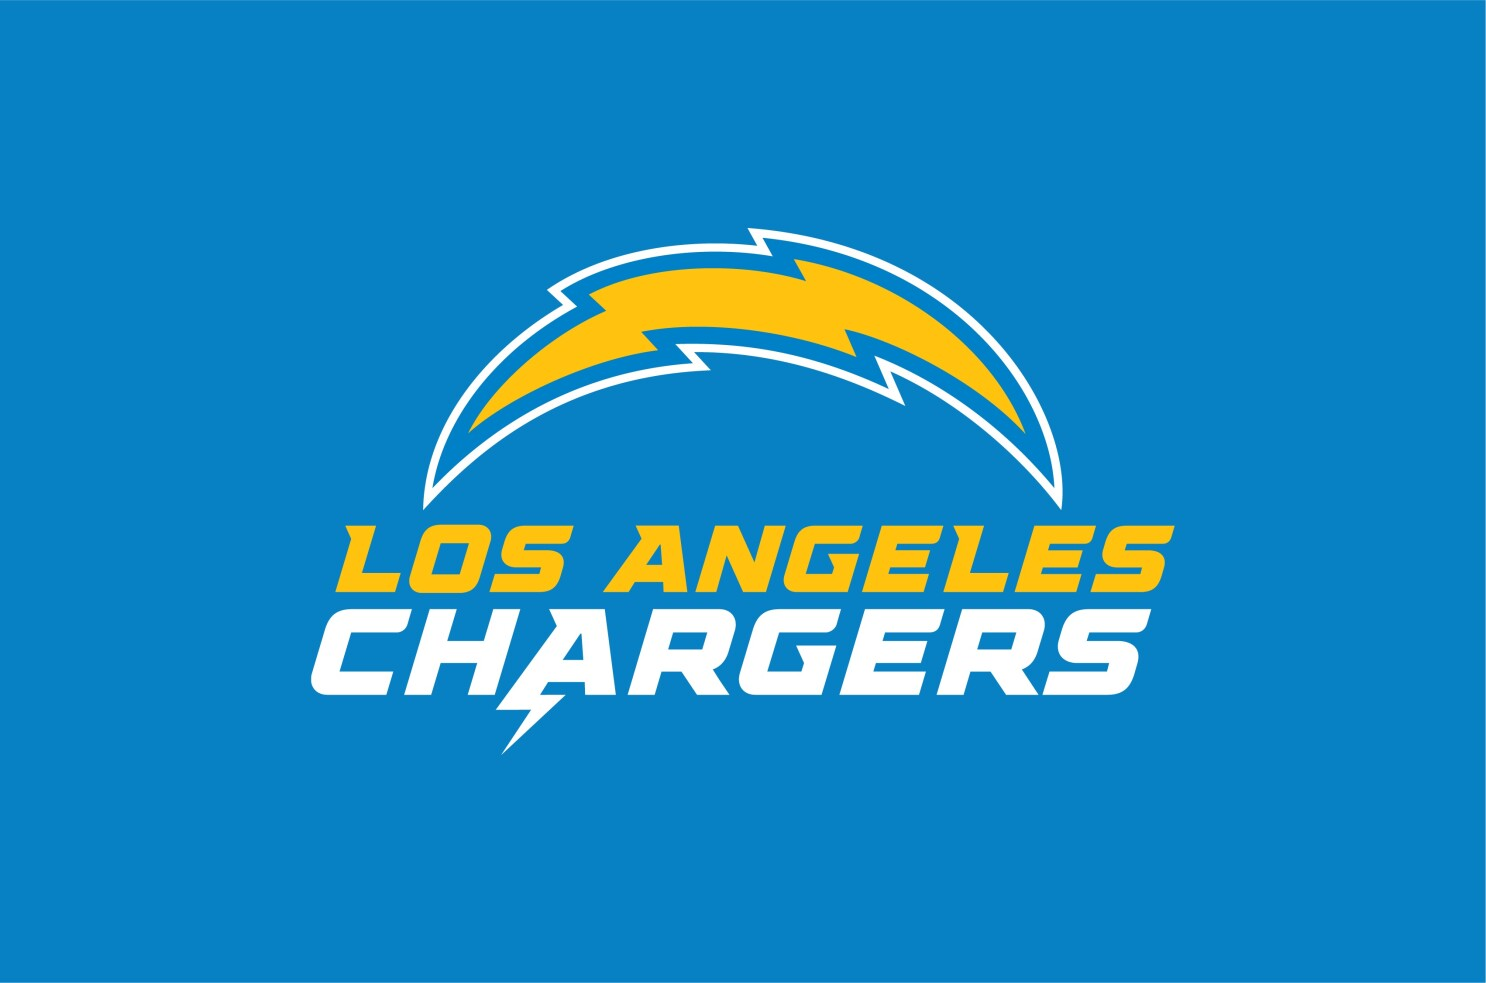 Chargers make some alterations to logo for 2020 season - Los ...